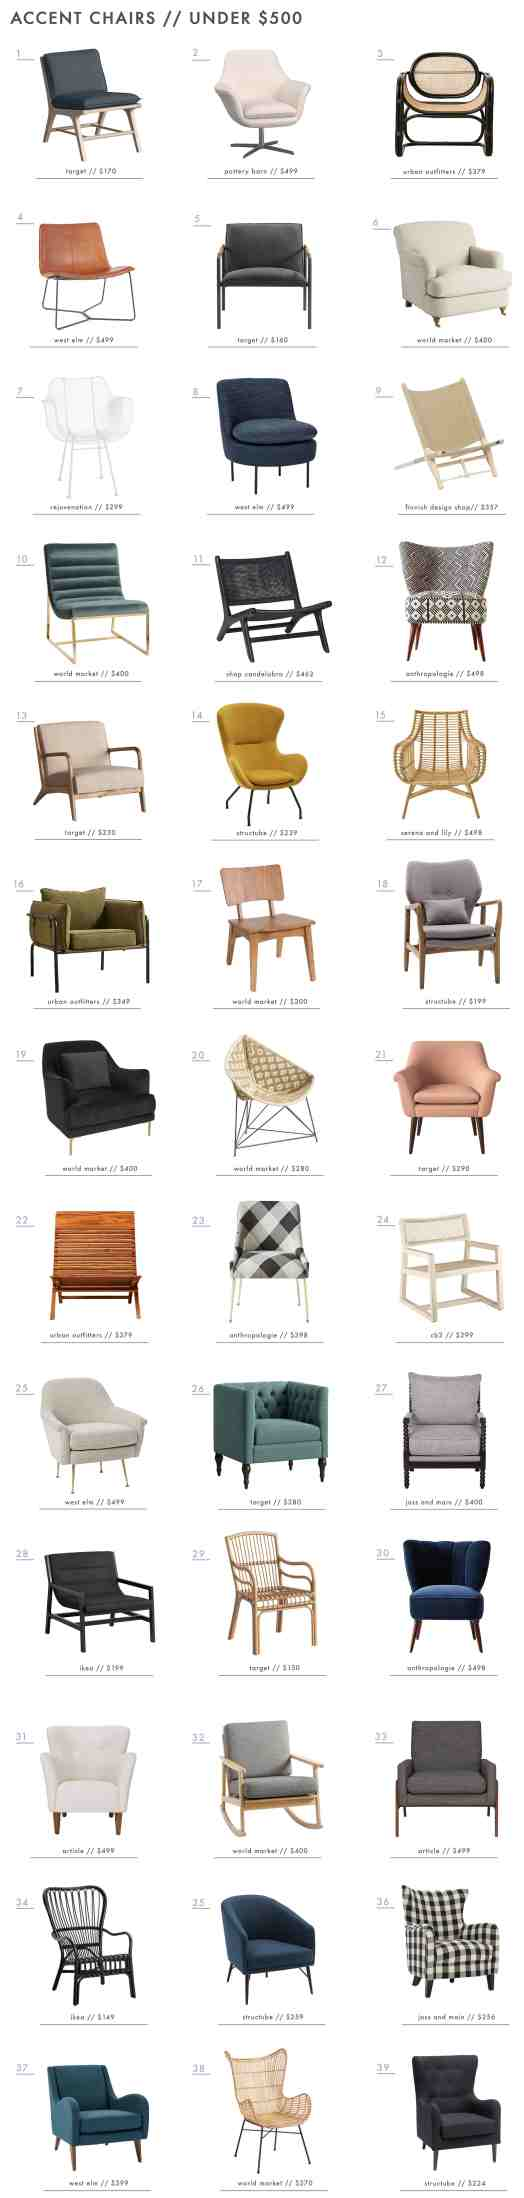 39 Of Our Favorite Accent Chairs Under 500 Rules To Considering When Shopping